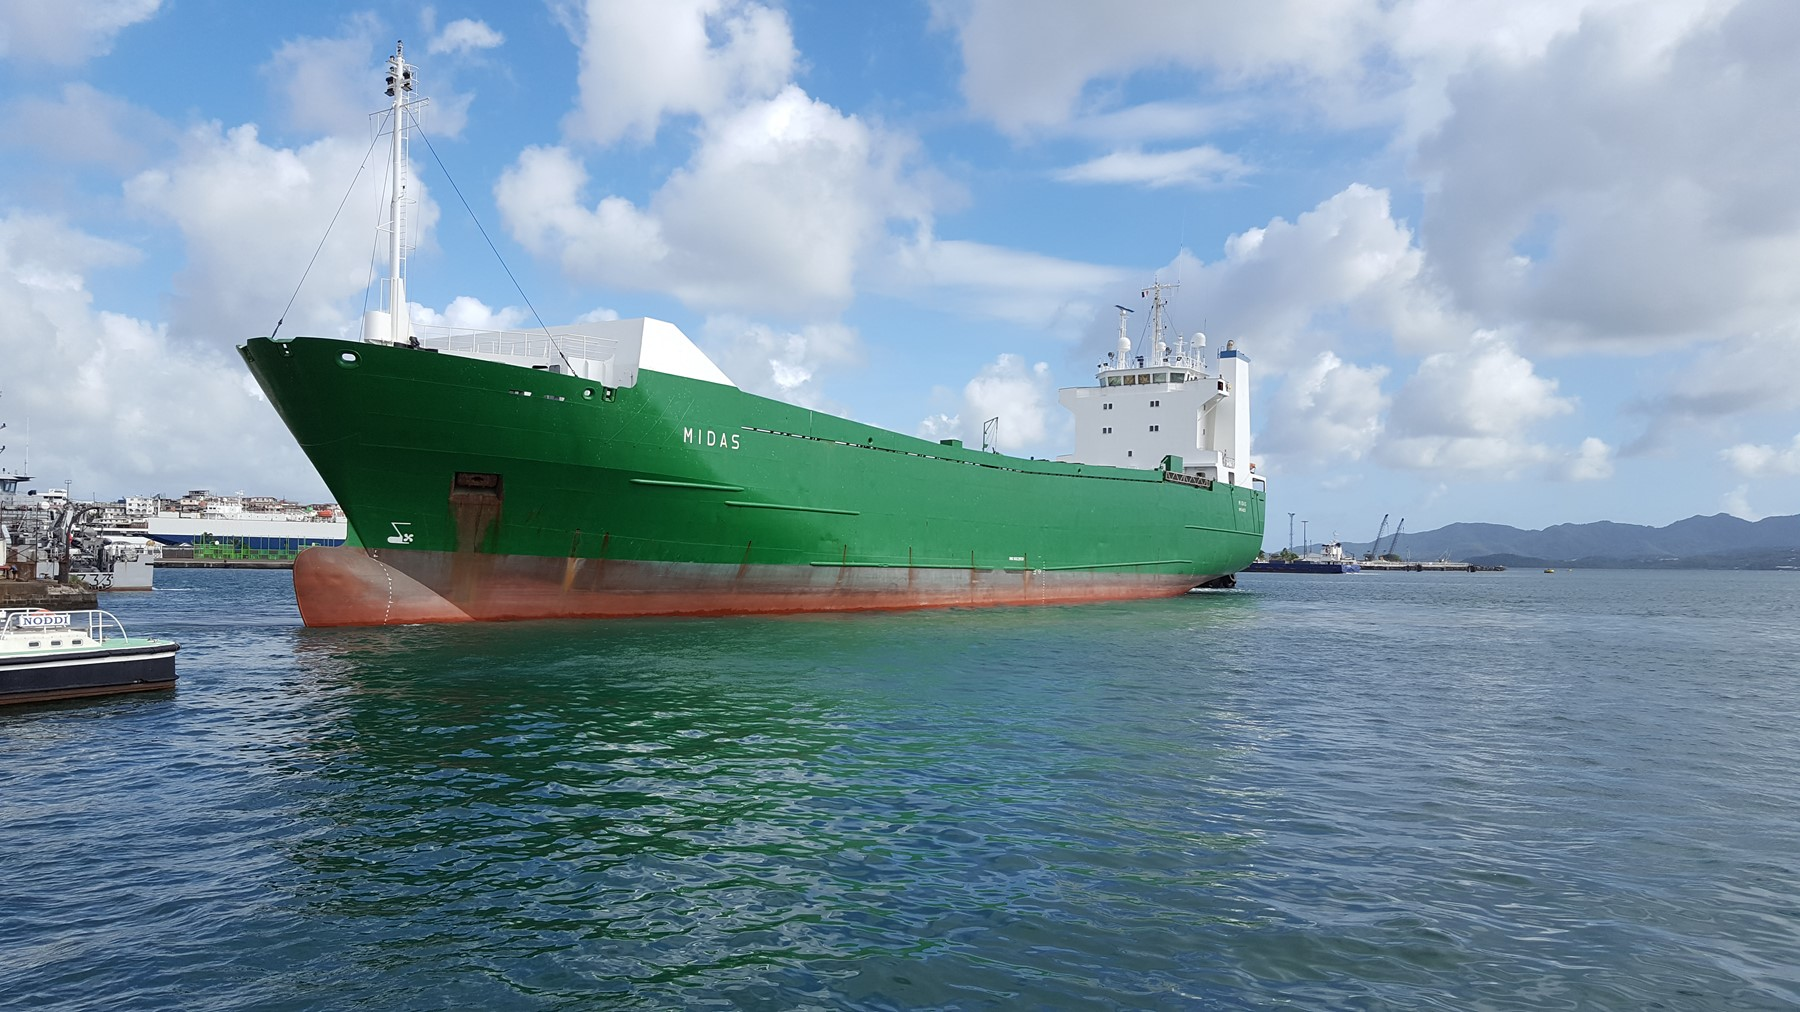 Wagenborg expands RoRo service with new Baltic line